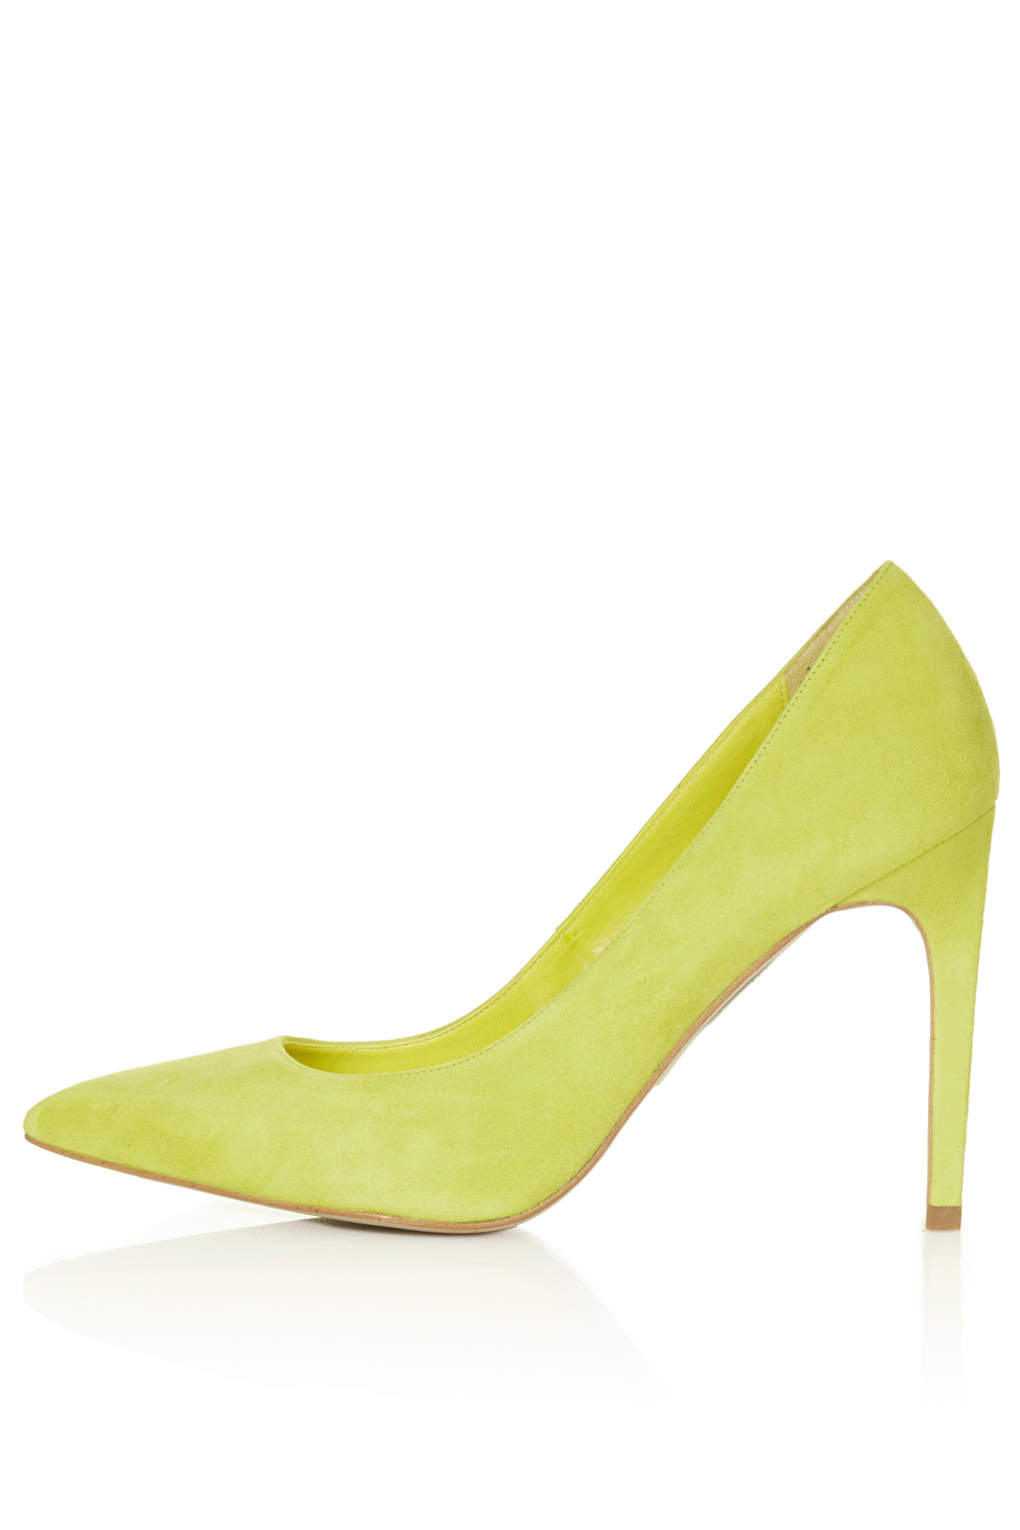 huge discount 649d5 19ff0 TOPSHOP Womens Glory High Heel Shoes Lime in Yellow - Lyst